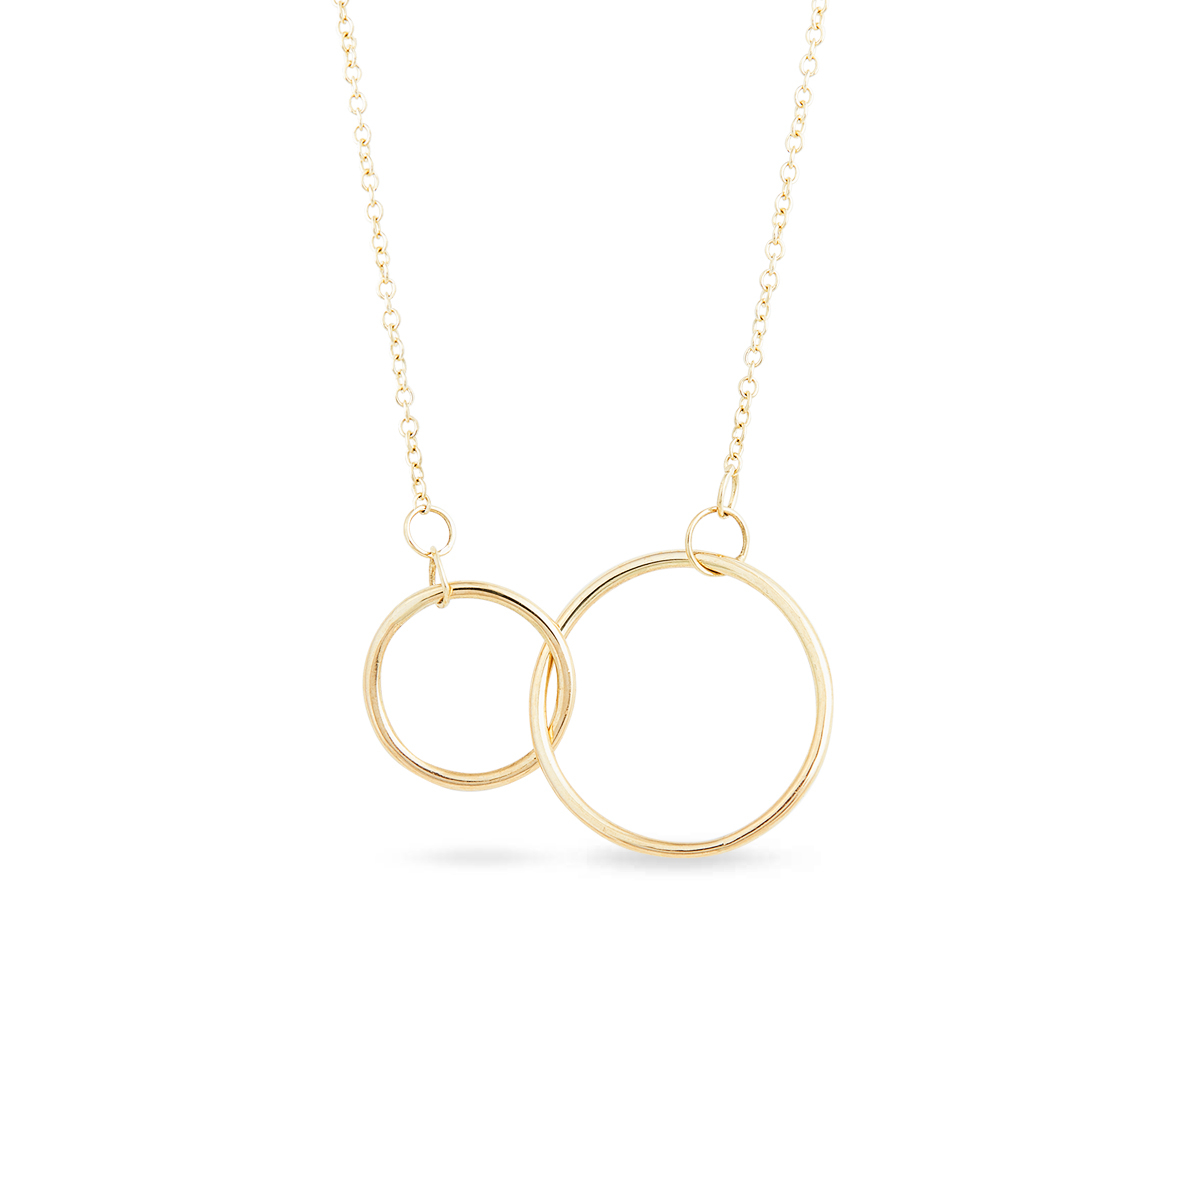 https://www.klenota.co.uk/Yellow-Gold-Pendants/Modern-gold-necklace